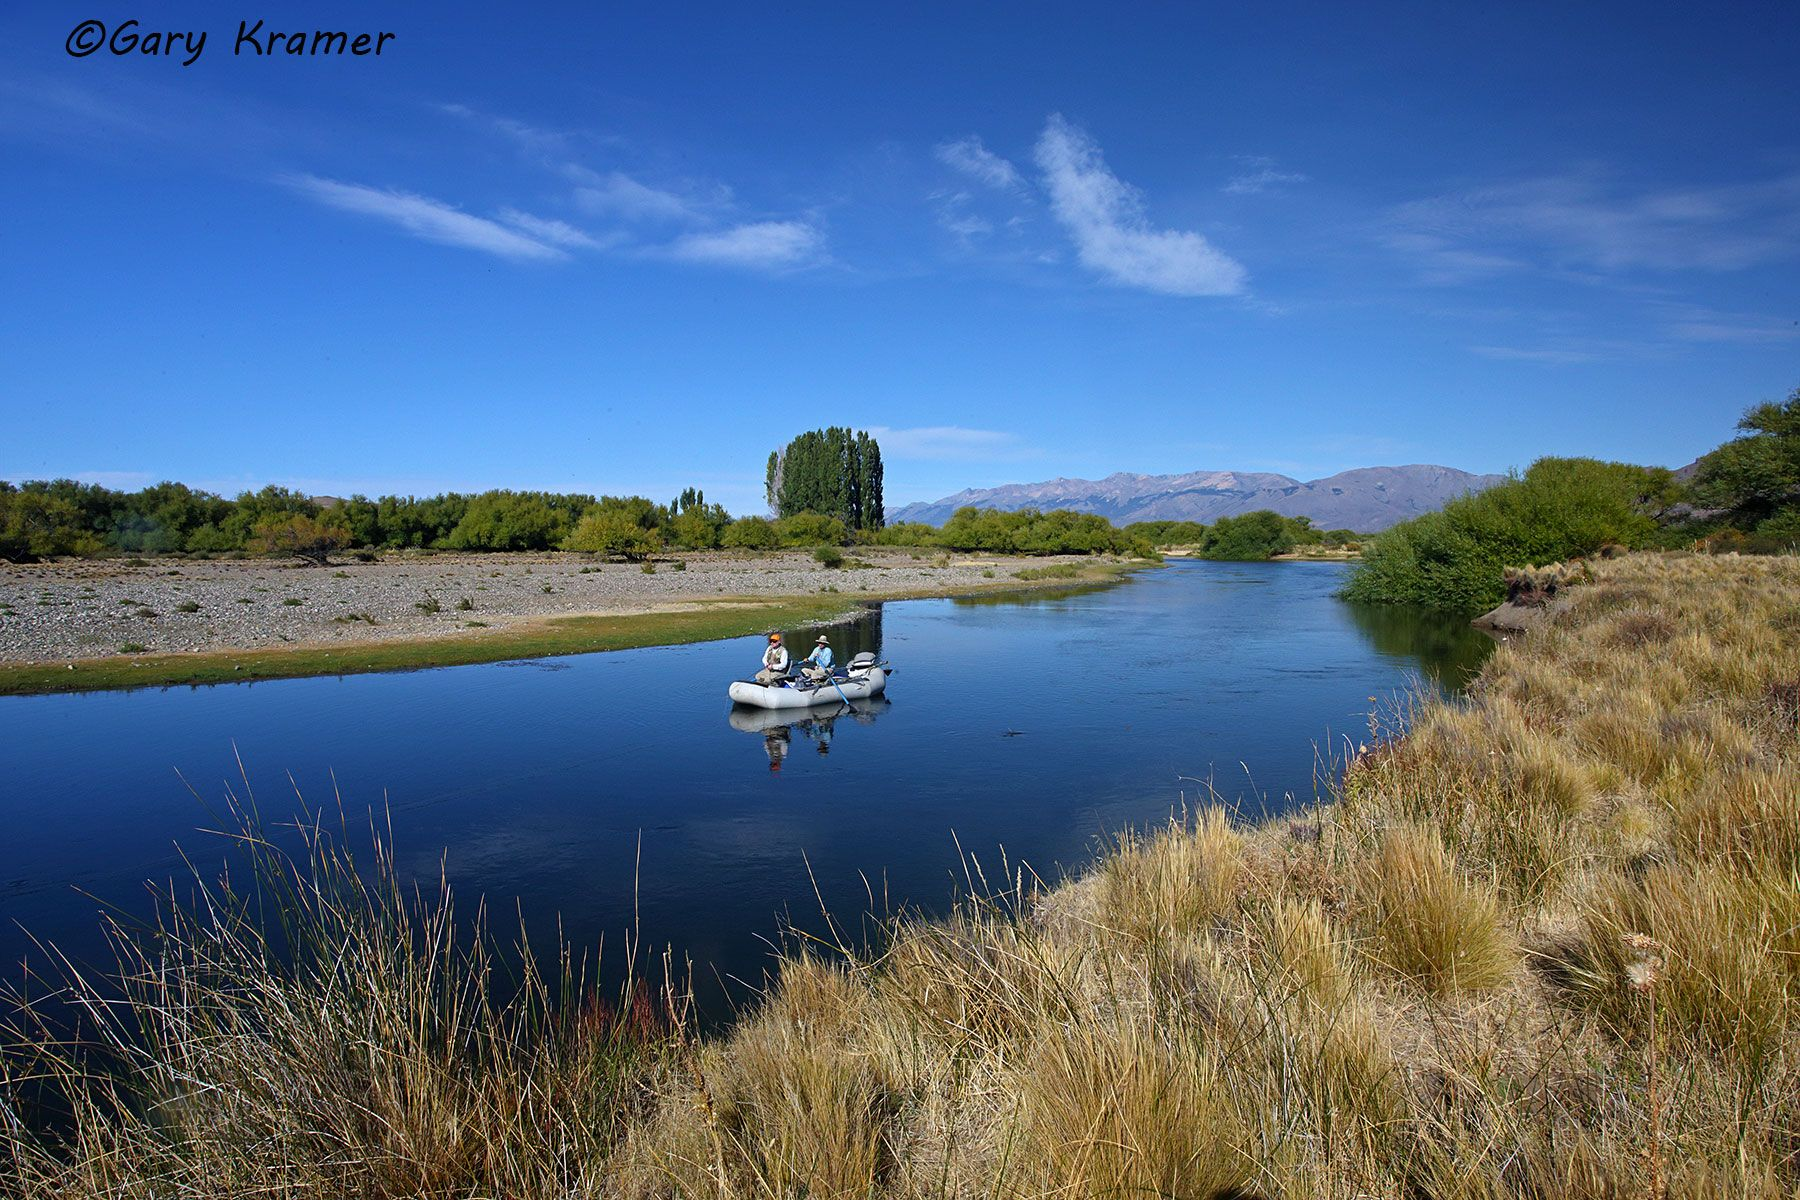 Flyfisherman/guide floating the Chubut River, Argentina - SFAcr#059d